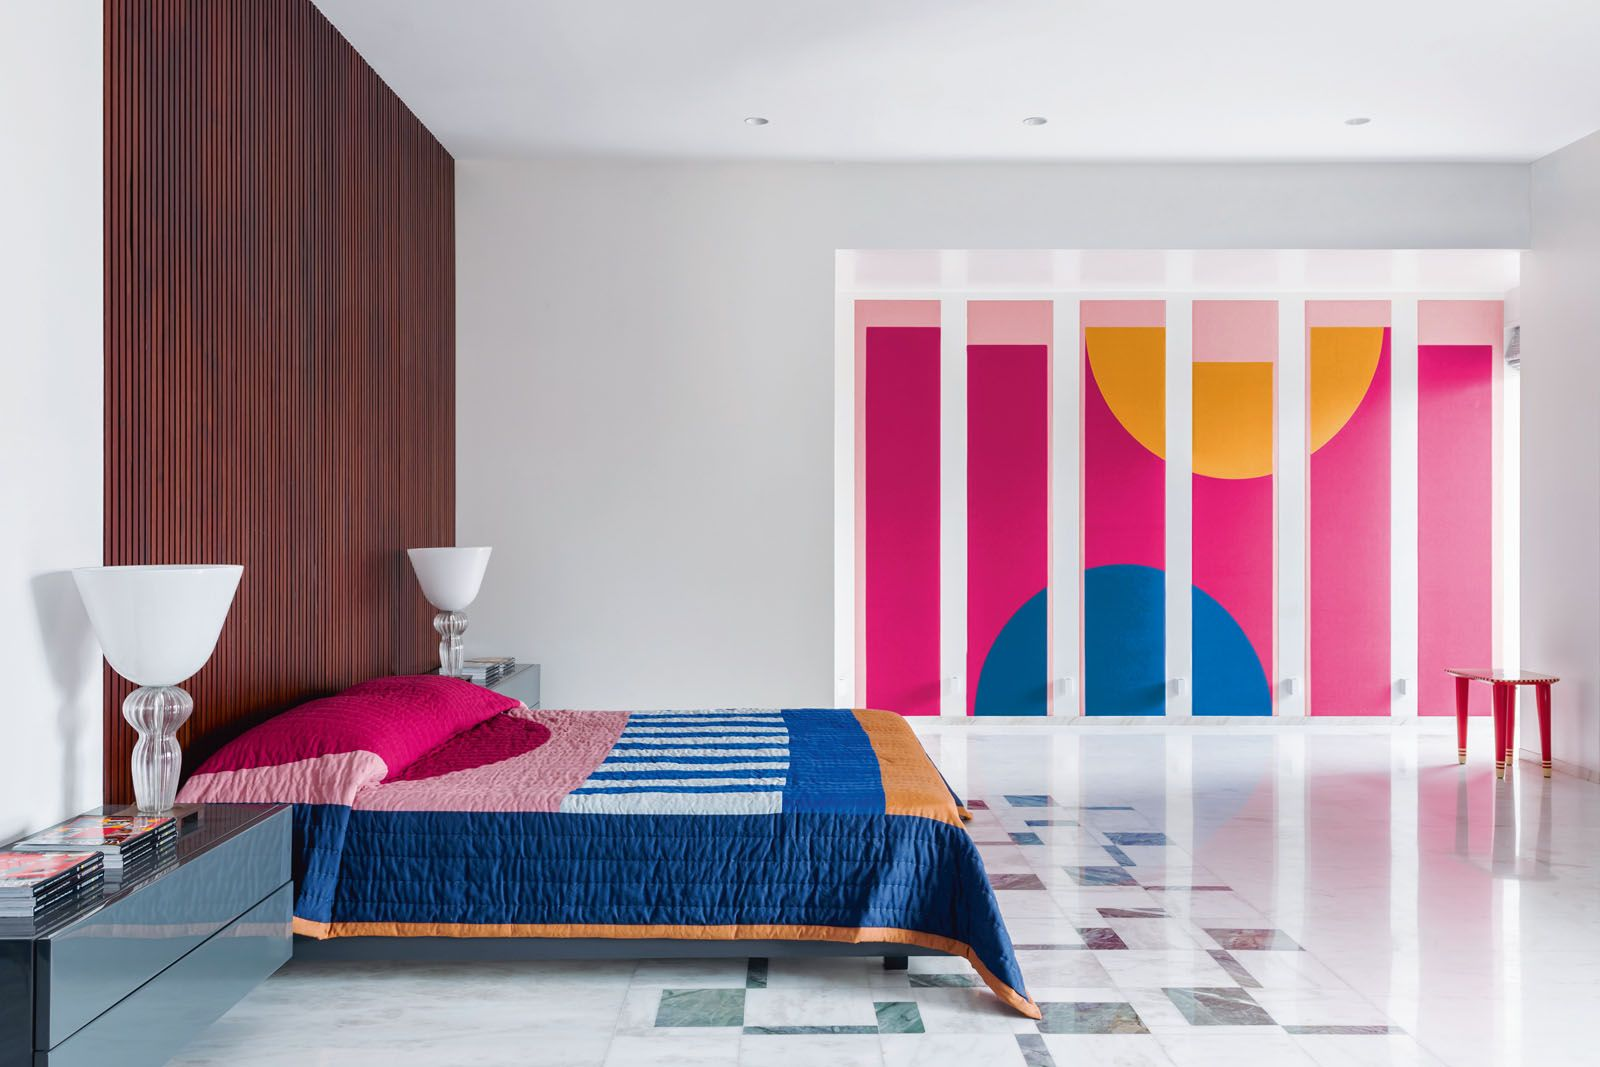 The wall mural is the focal point of this master bedroom